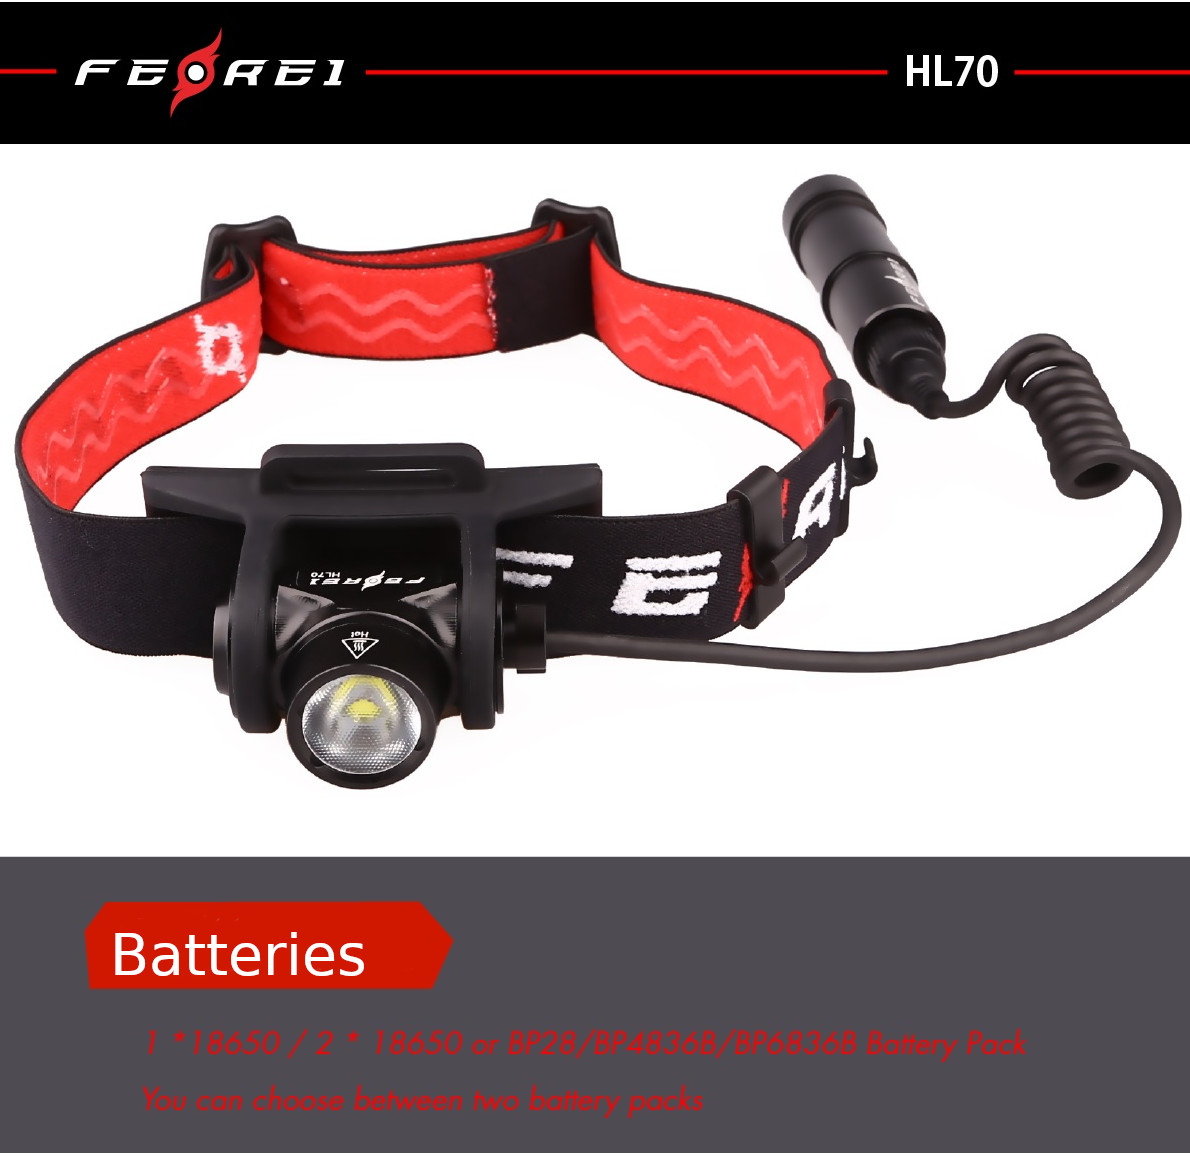 powerful headlight light for running orienteering